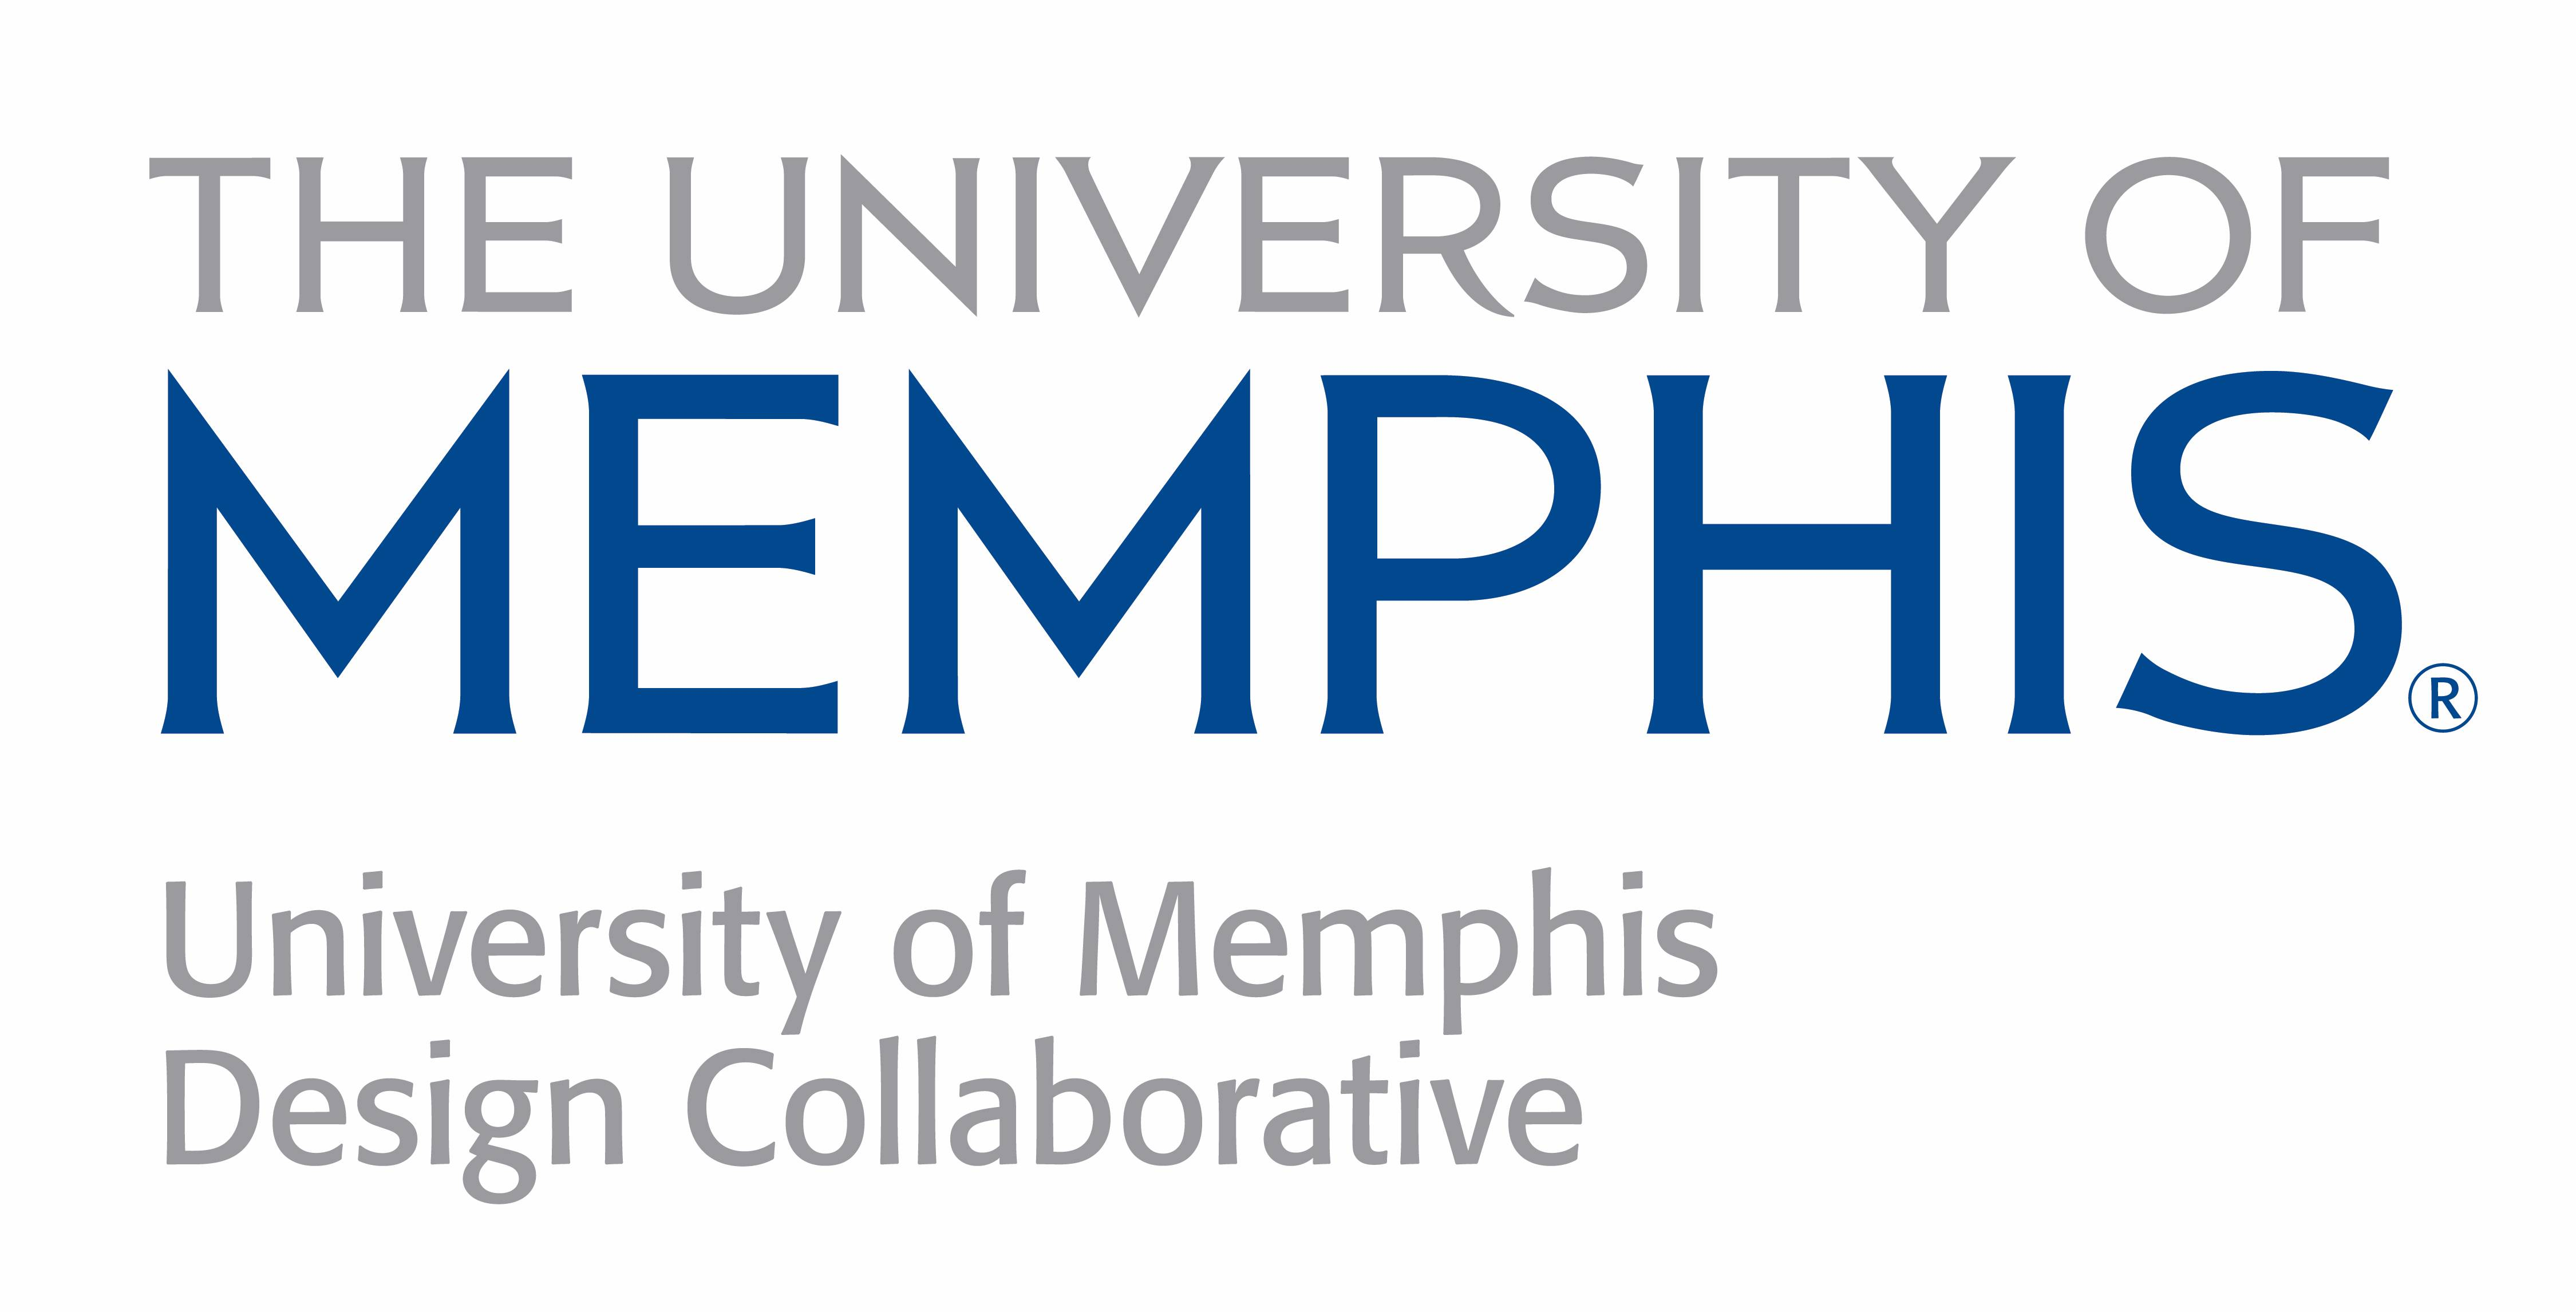 "The University of Memphis Design Collaborative ""helps translate research on the design of the built environment's influence on public health. AIA design and health research consortium."